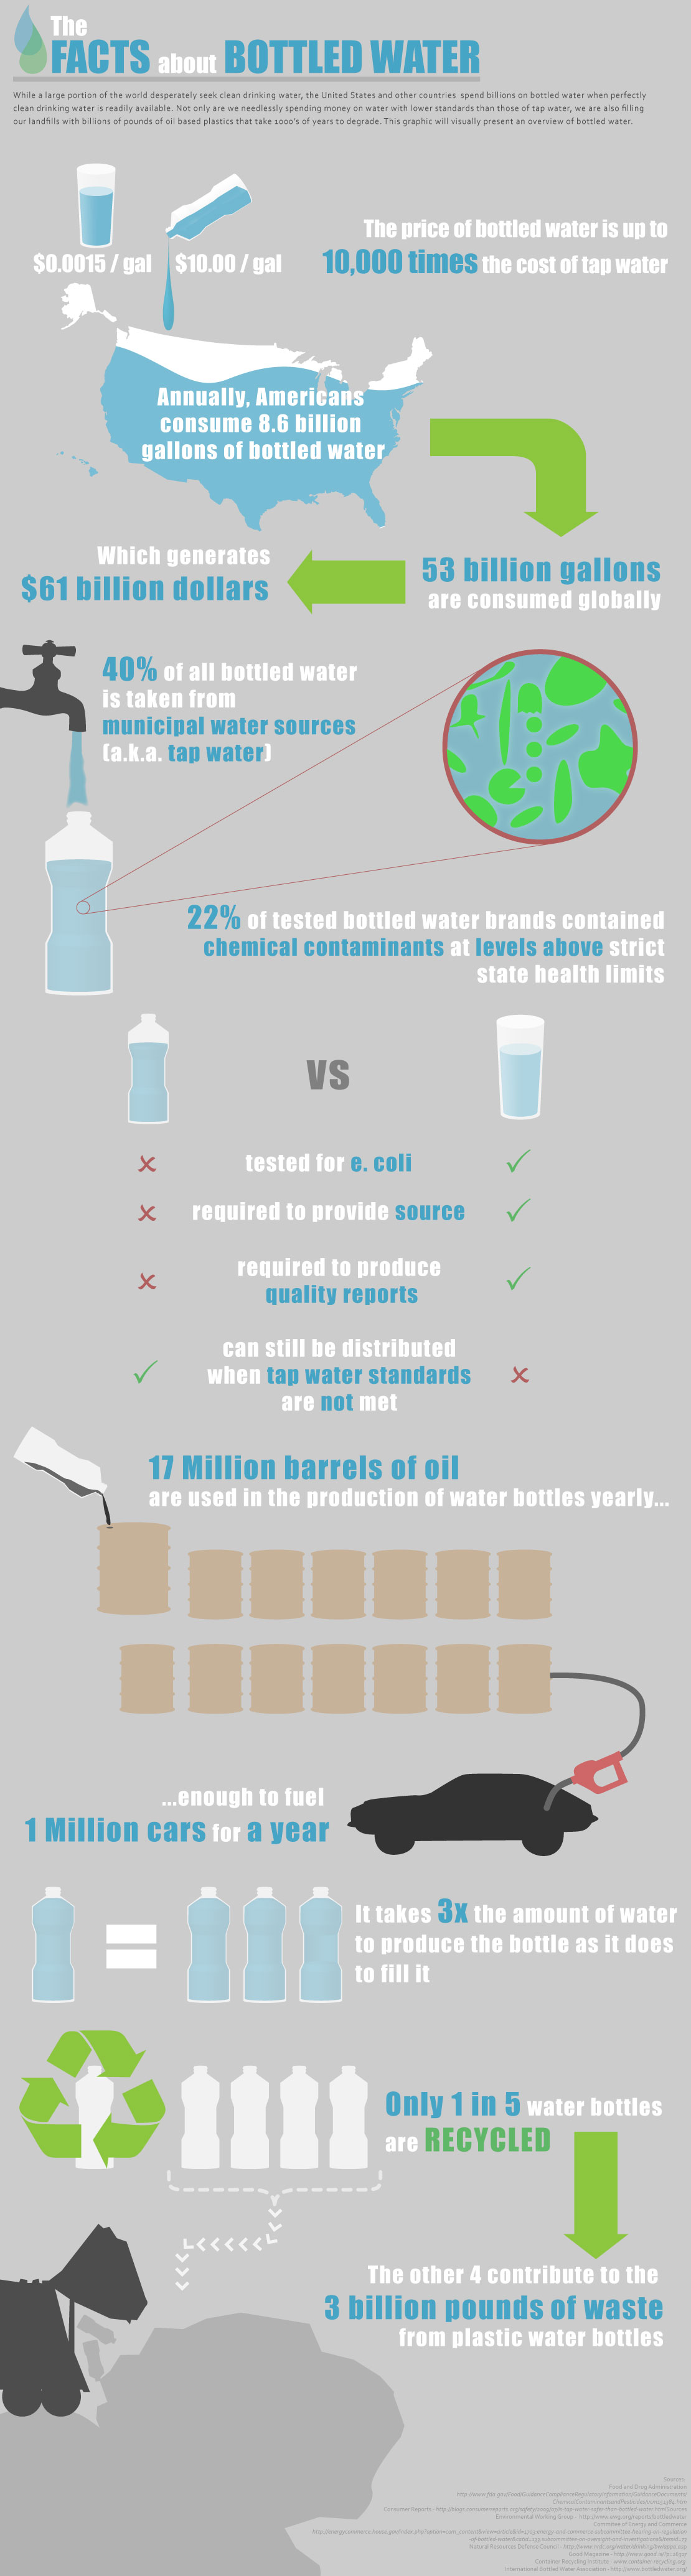 Bottled Minneral Water Facts mineral,water,purity,polution,sanitation,infographic